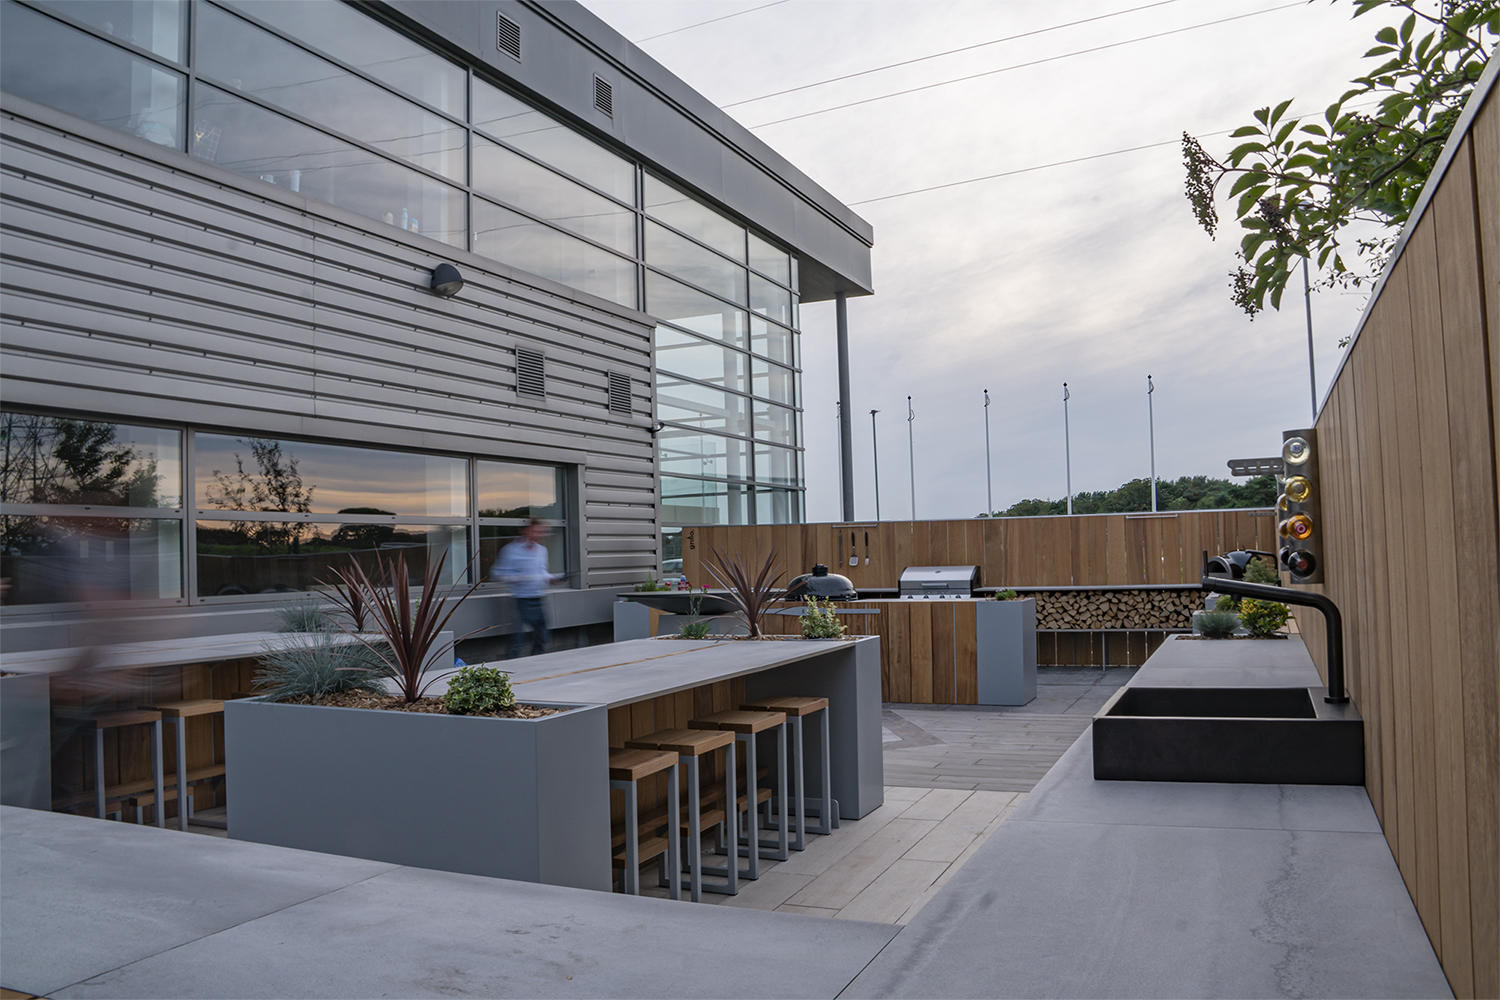 Havwoods Grillo outdoor kitchen project seating, Chef's Anvil BBQs pizza oven, sinks, double fridges work tops